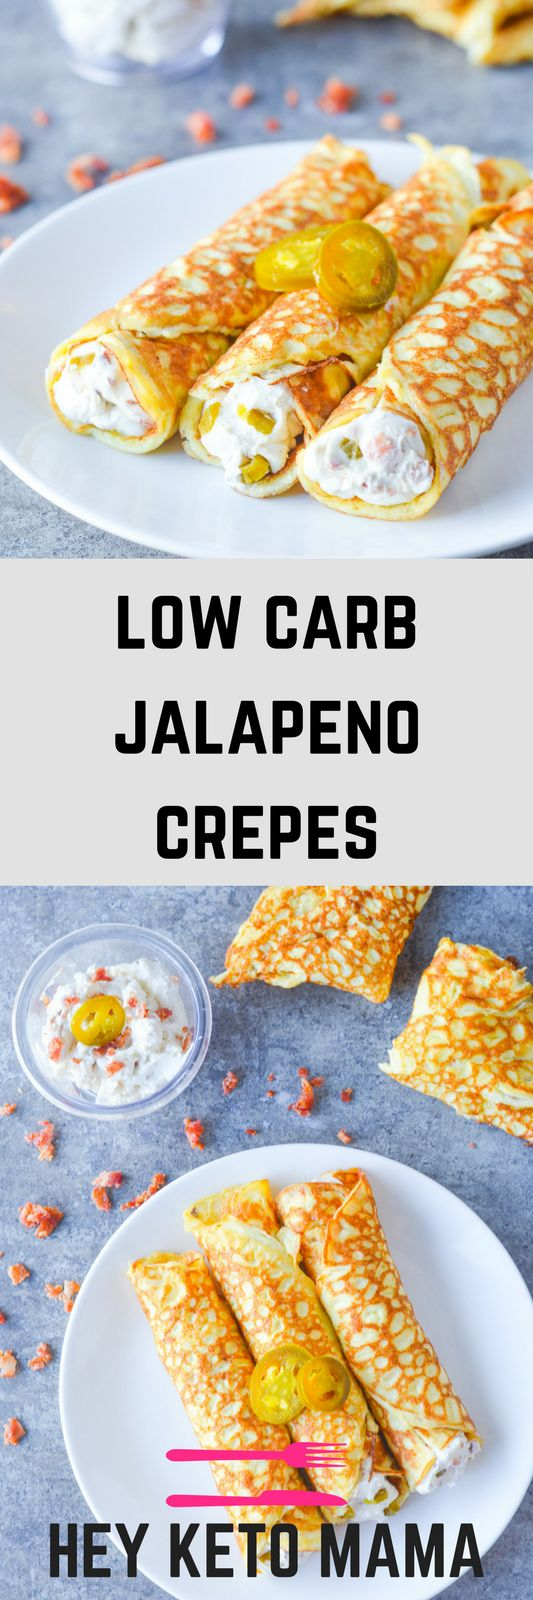 These low carb jalapeno crepes are an amazing flavor adventure--a combination of sweet, savory AND spicy! | heyketomama.com